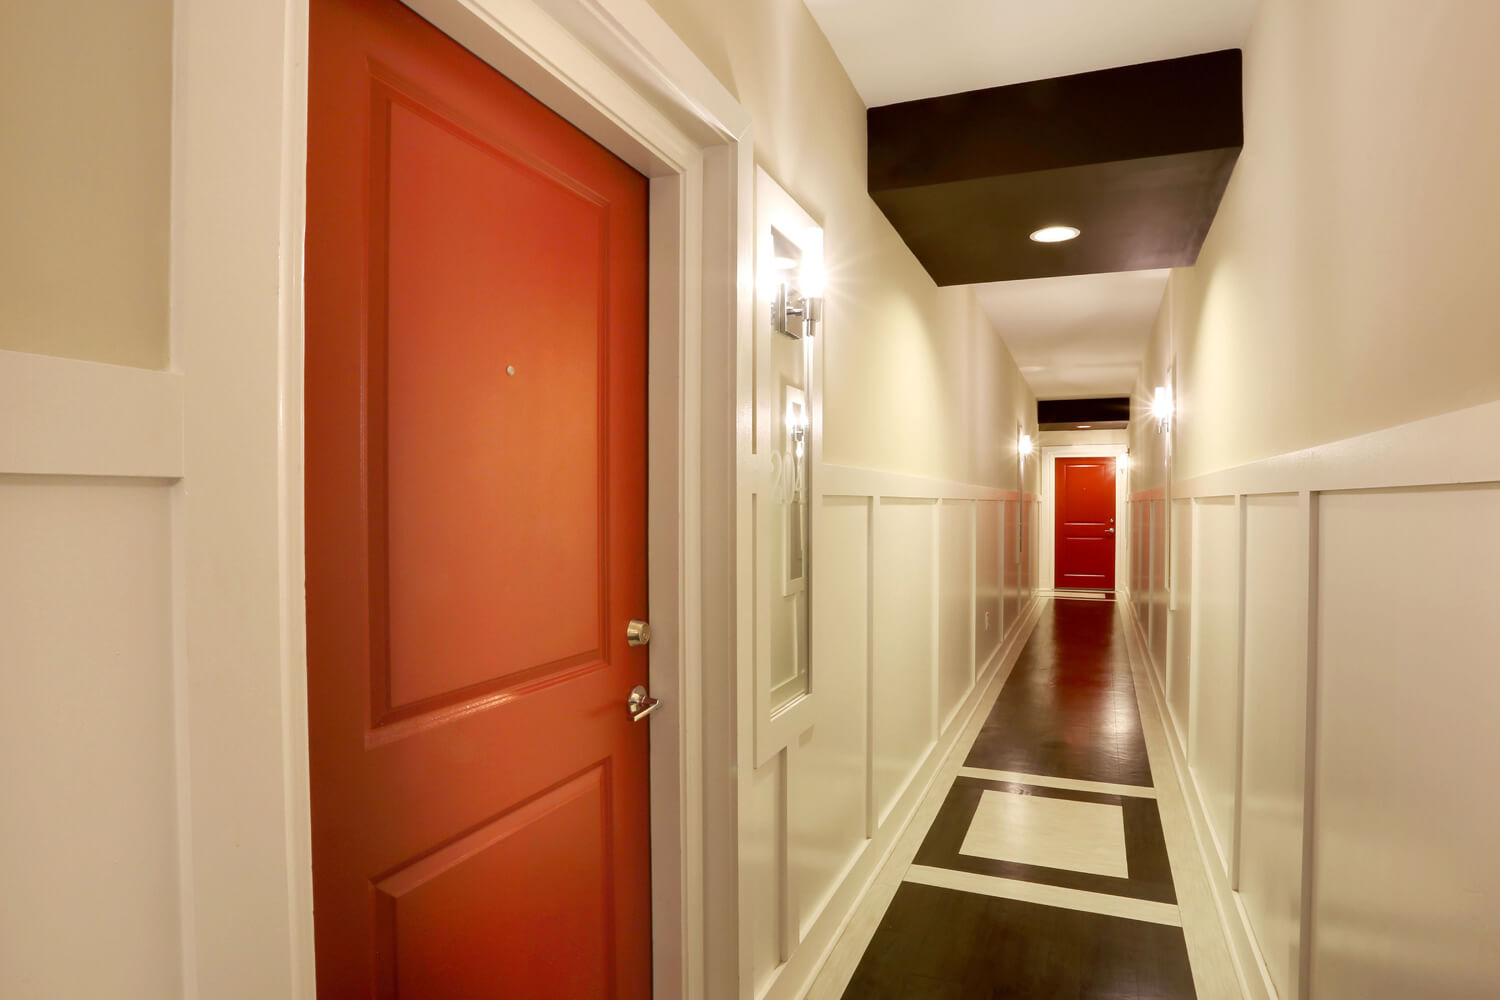 The 40 Four Building Designed by Foshee Architecture – View of Interior Hallway